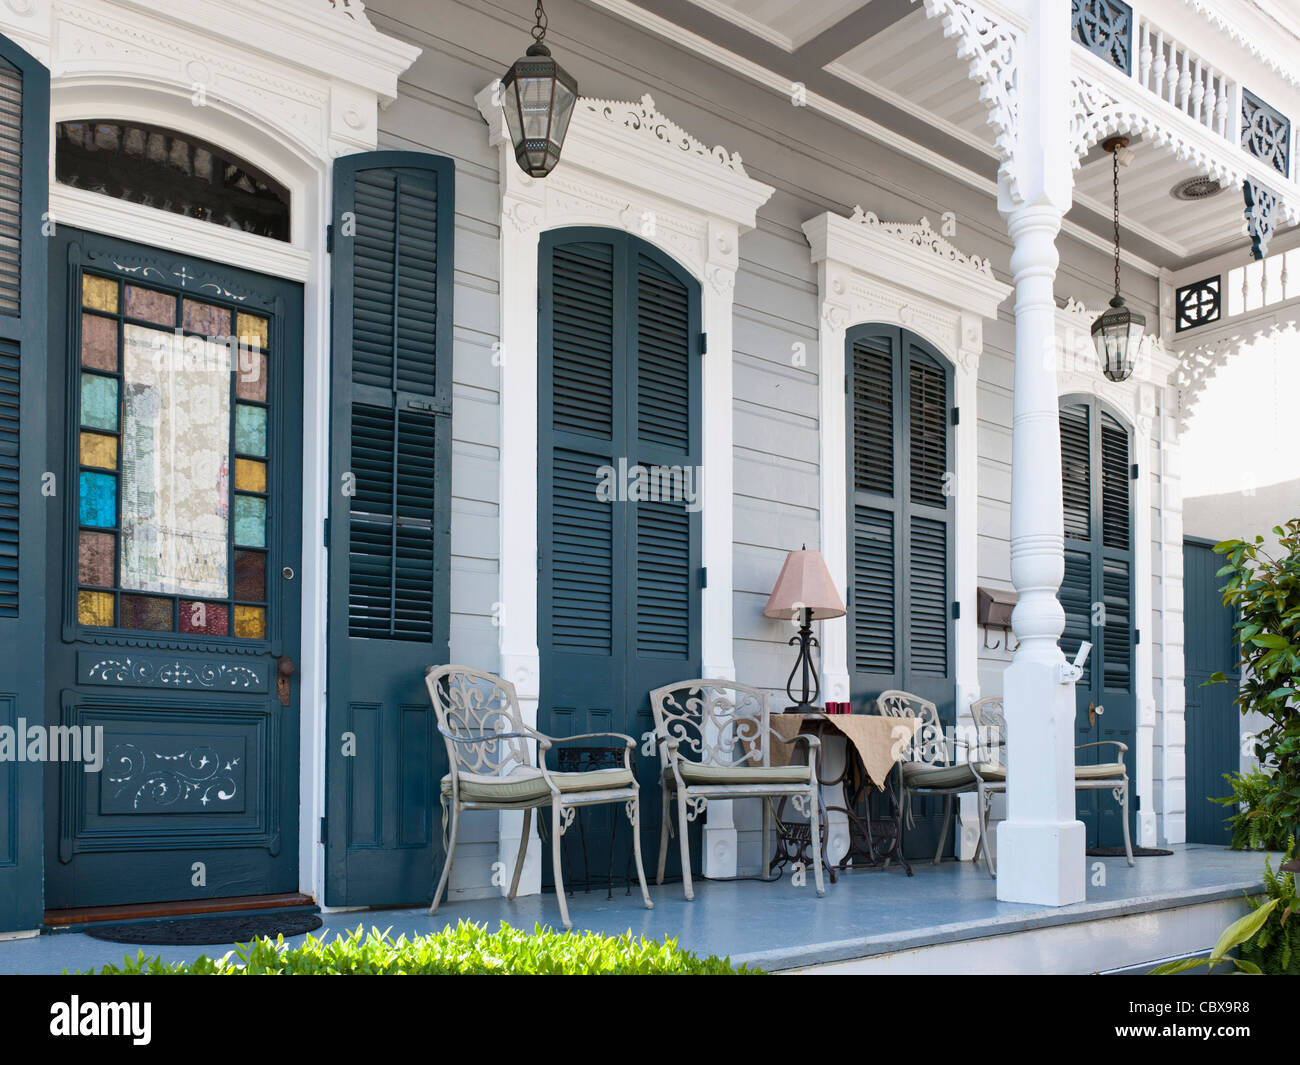 Porch detail, house in french Quarter, New Orleans - Stock Image